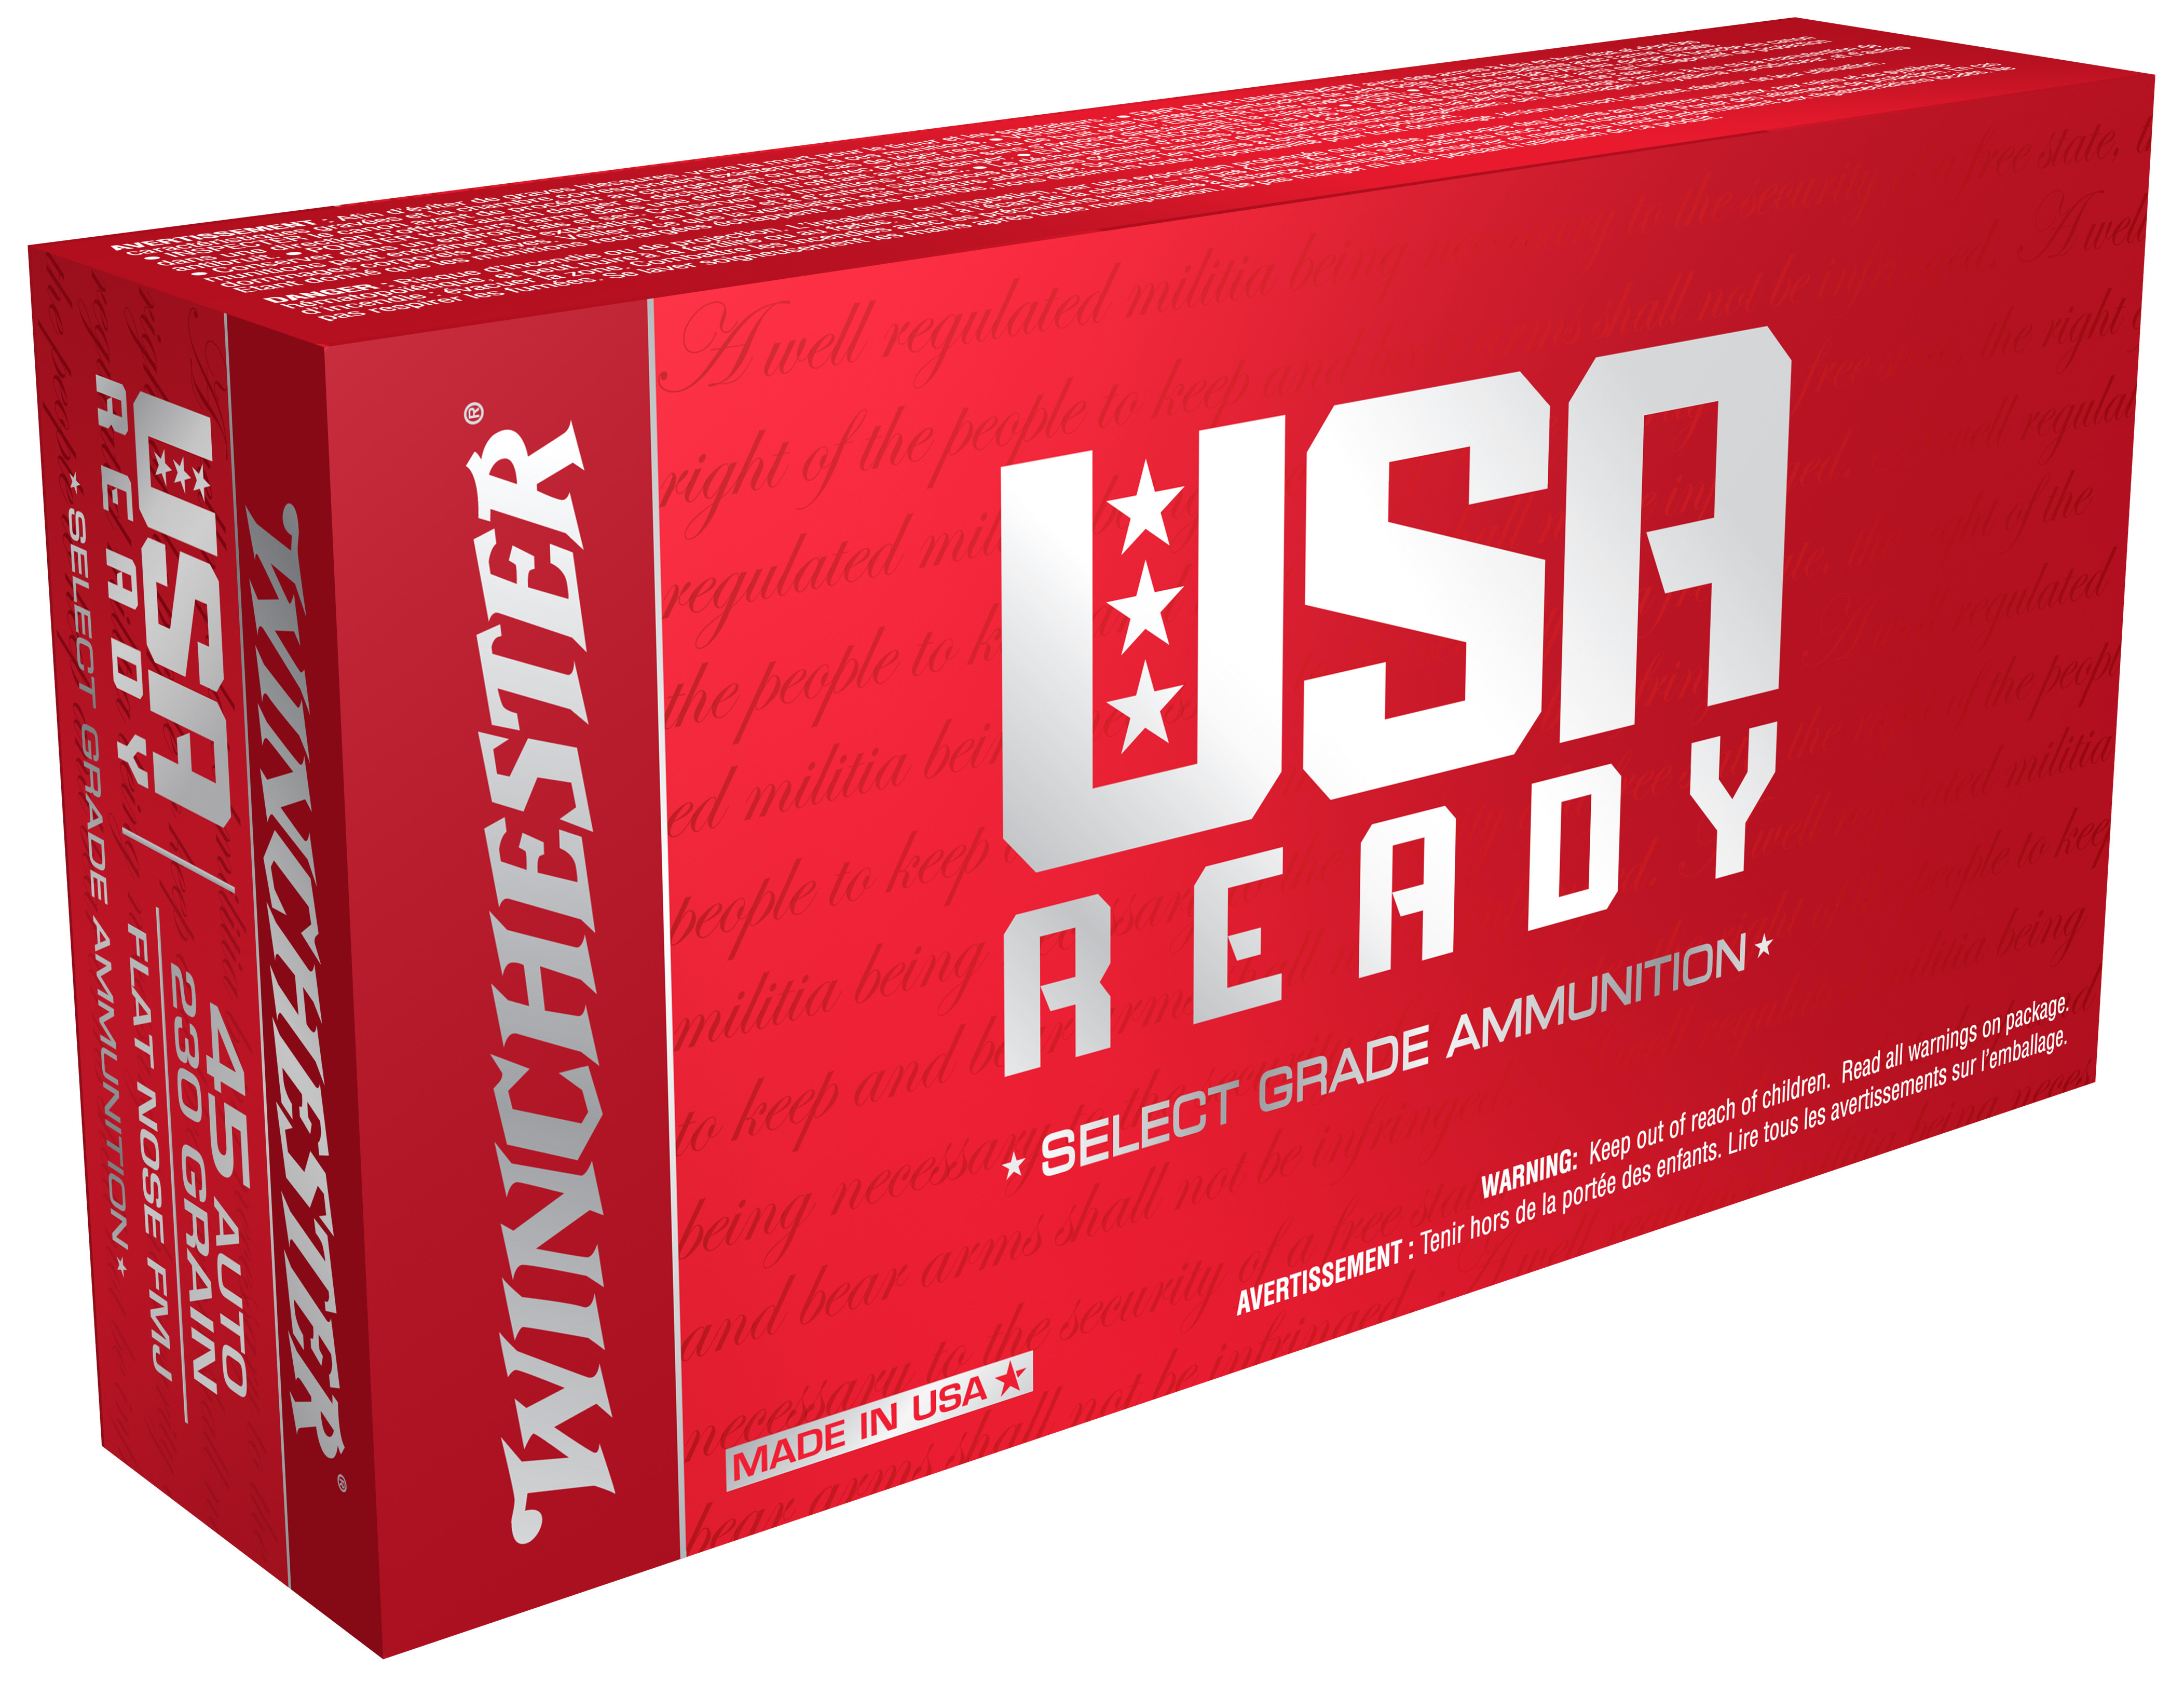 Winchester USA Ready Ammunition 45 Auto (ACP) 230GR Full Metal Jacket Per 50